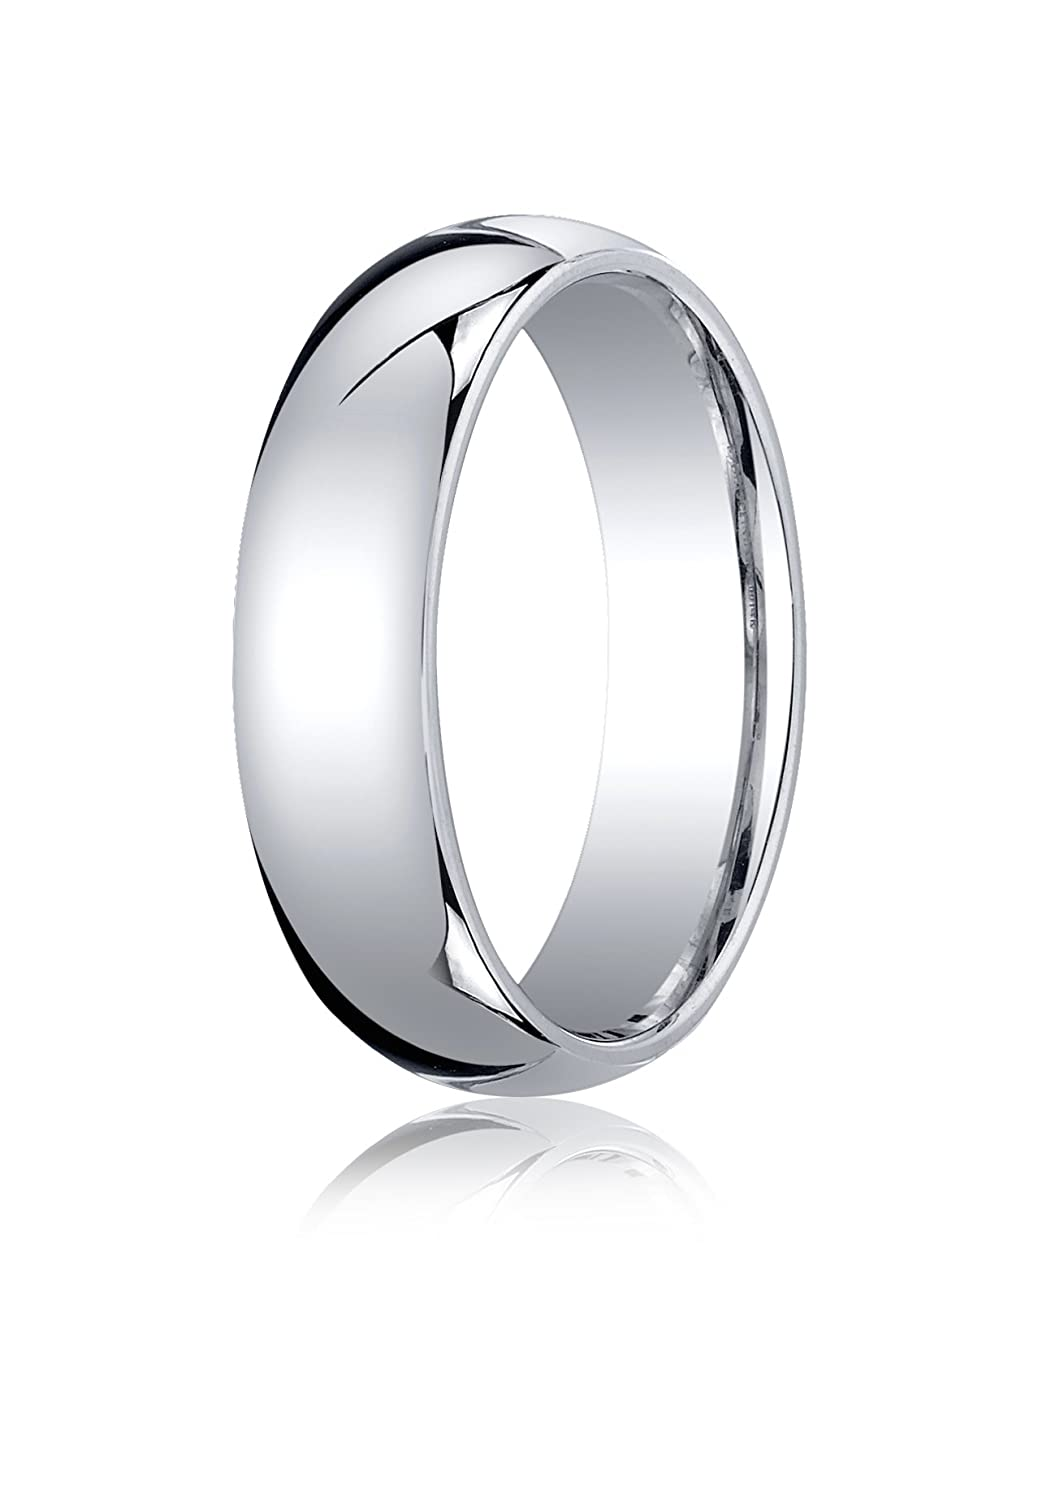 Mens 10K White Gold 6mm Slightly Domed Standard Comfort Fit Wedding Band Ring